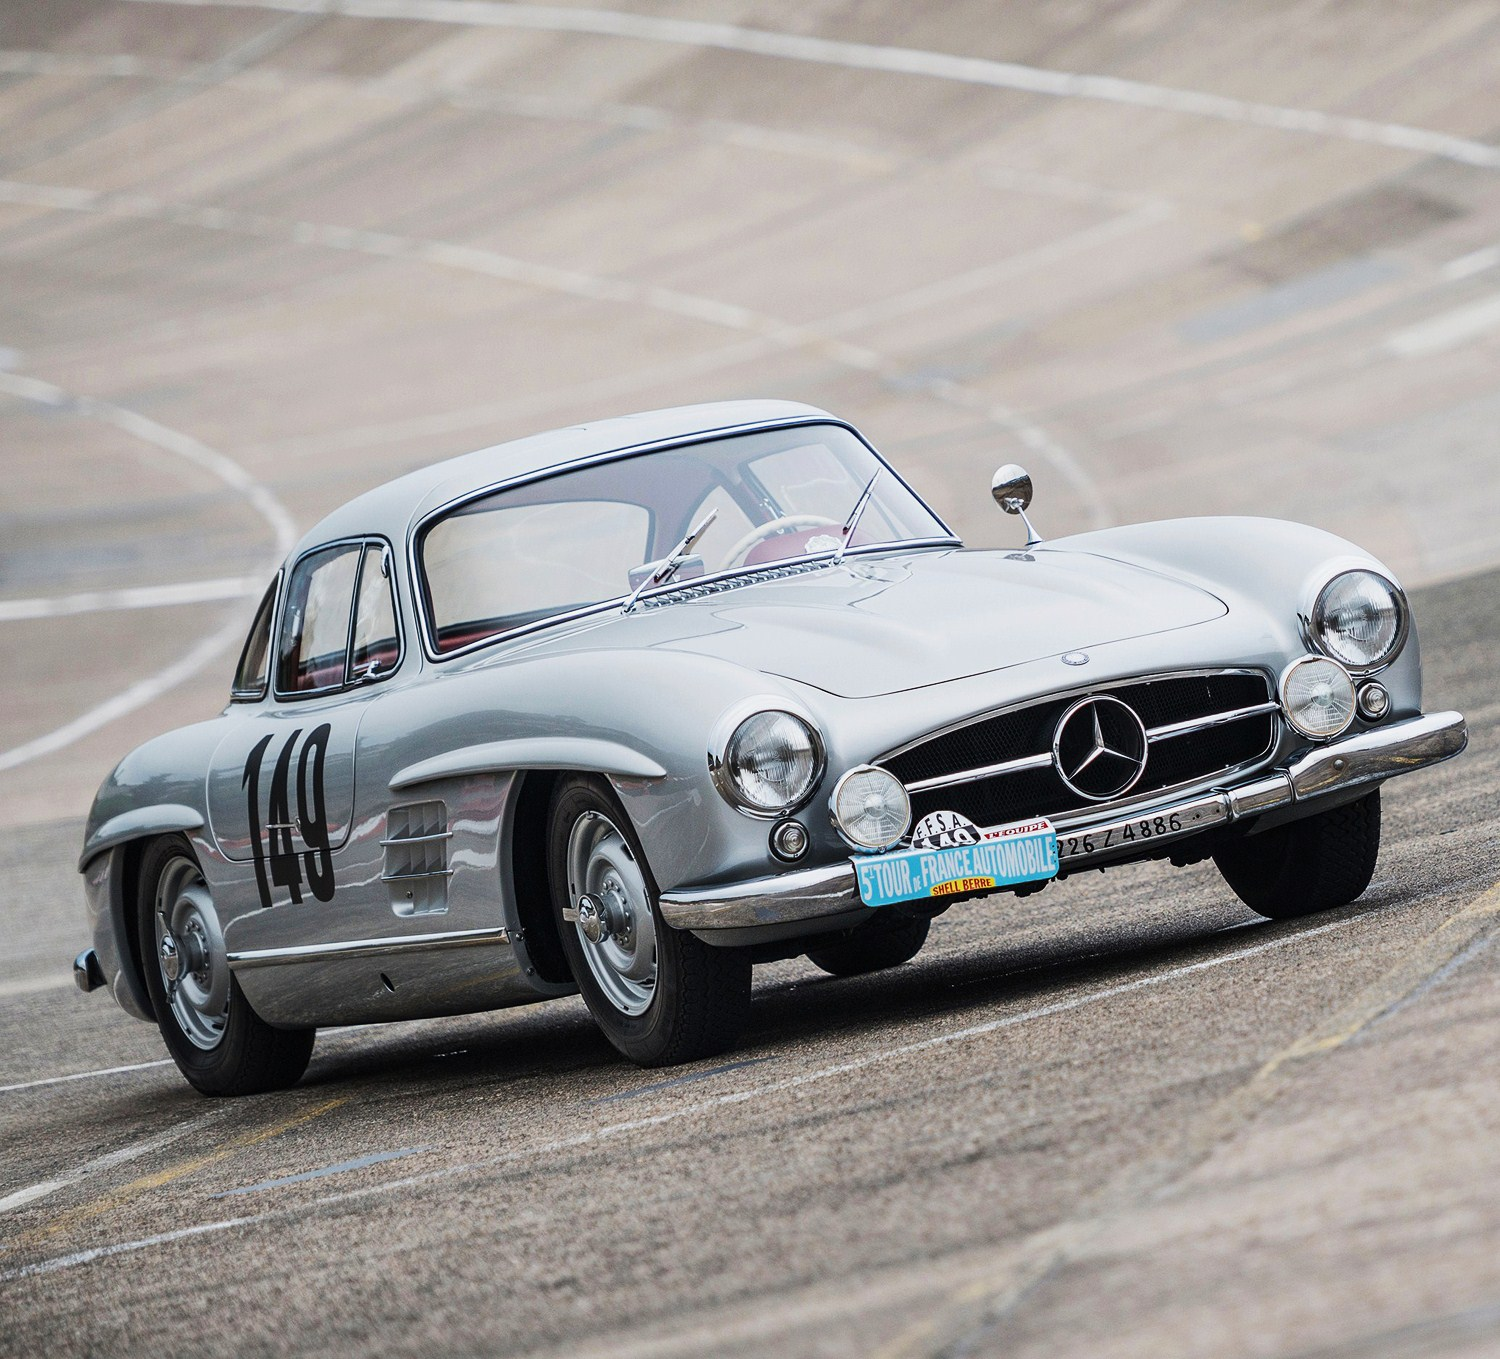 1955 mercedes benz 300 sl gullwing factory prepped racer joins rm sotheby s new york auction. Black Bedroom Furniture Sets. Home Design Ideas